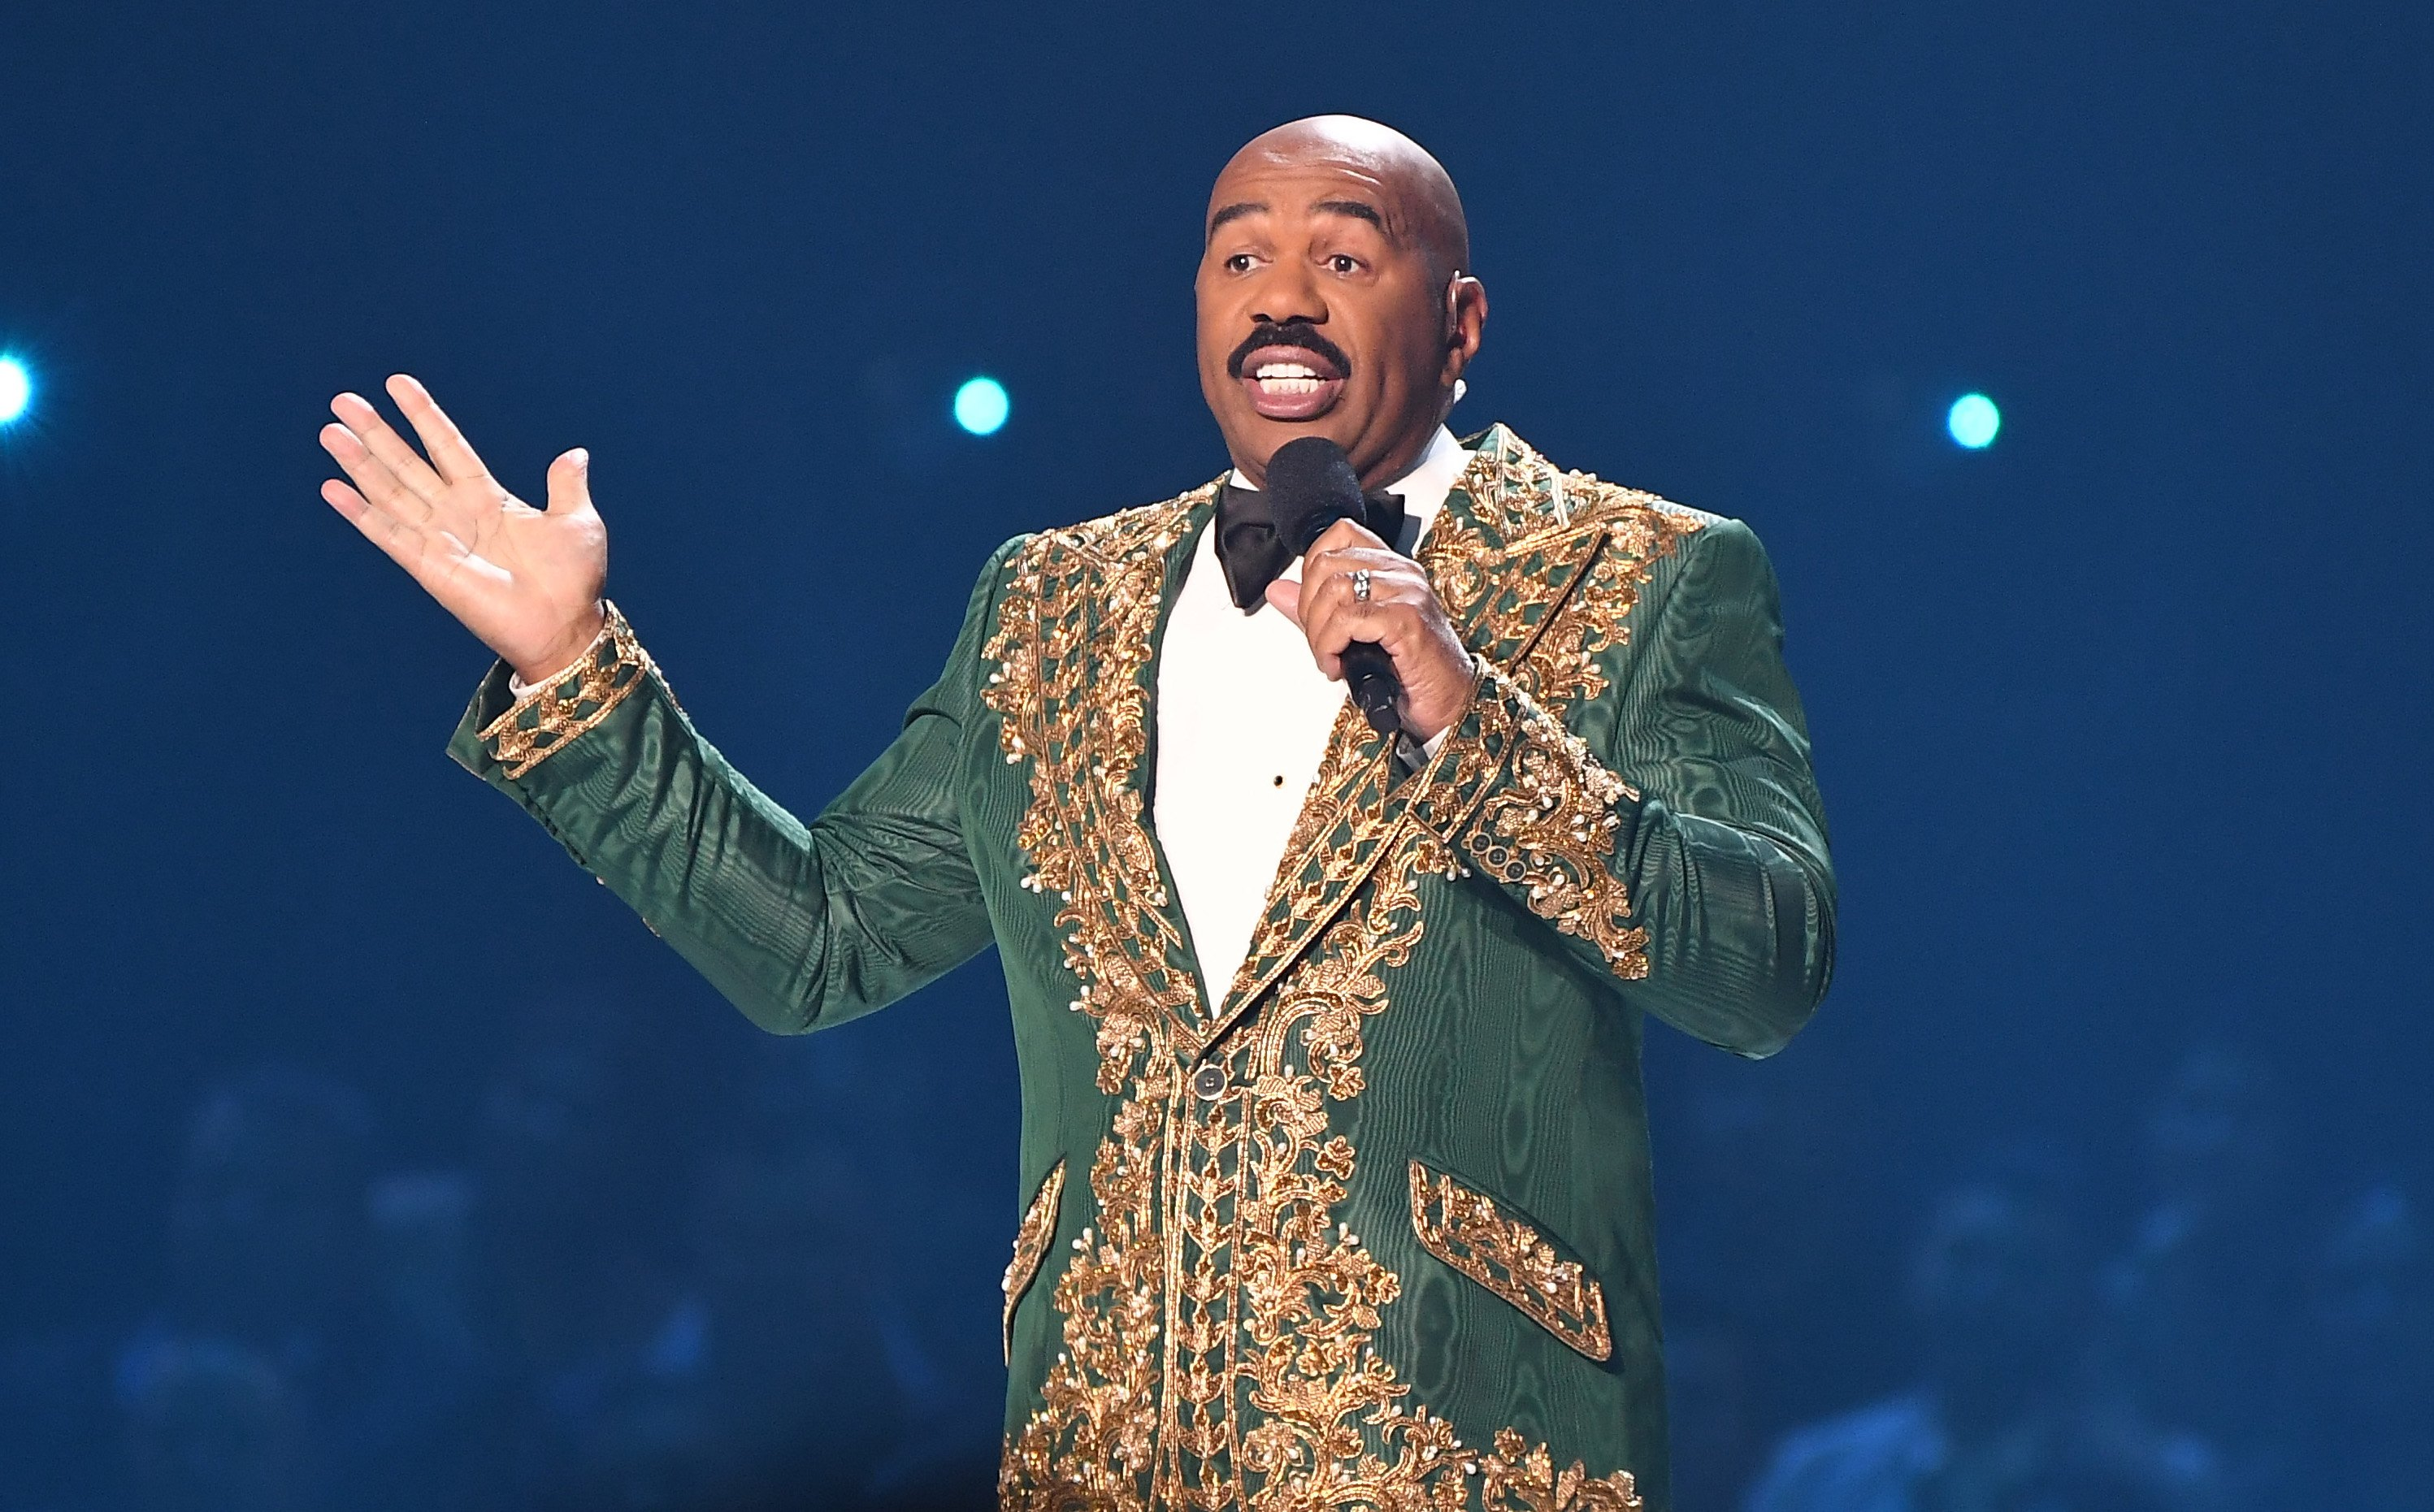 Steve Harvey speaking at the 2019 Miss Universe Pageant at Tyler Perry Studios on December 08, 2019 in Atlanta, Georgia | Photo: Getty Images